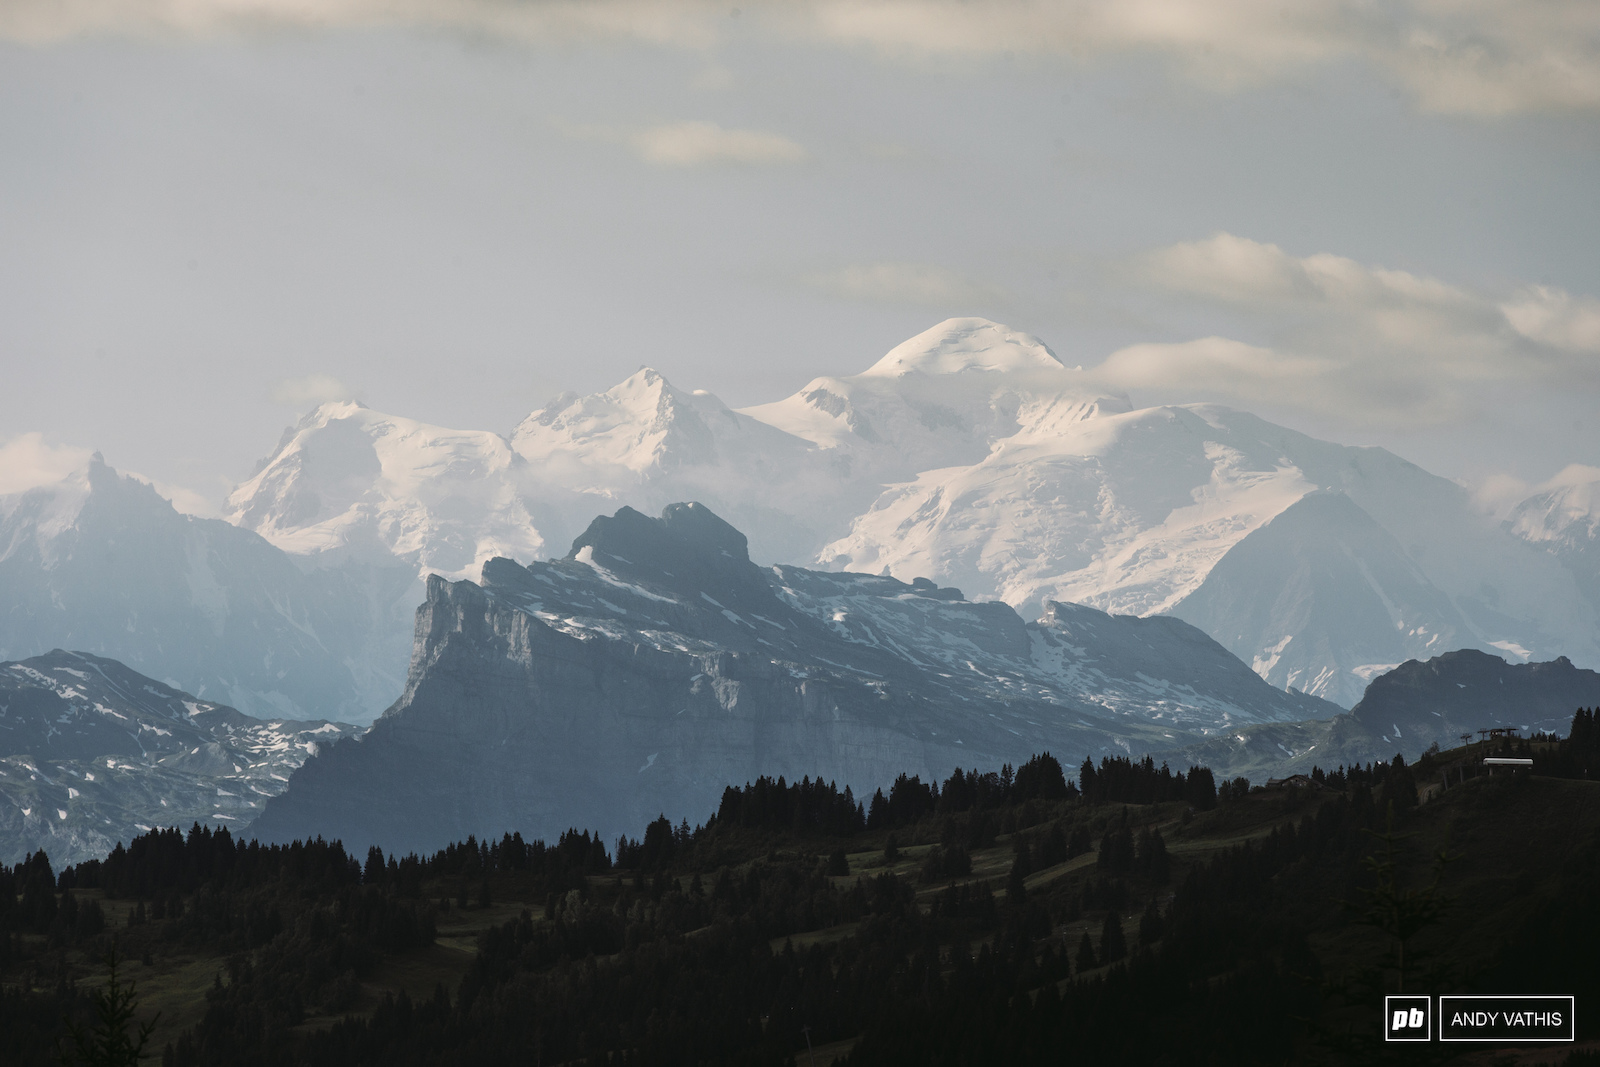 Mont Blanc towering over the French mountain range leading into Les Gets.